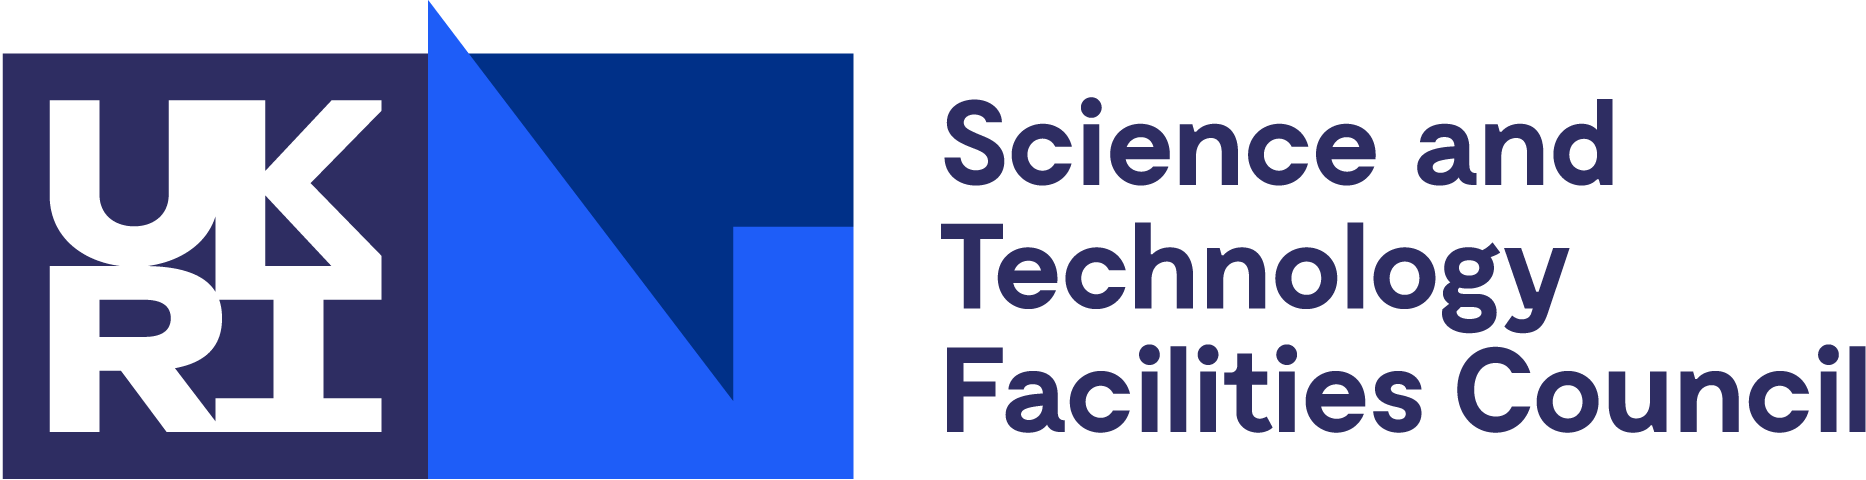 National Particle Accelerator Open Day